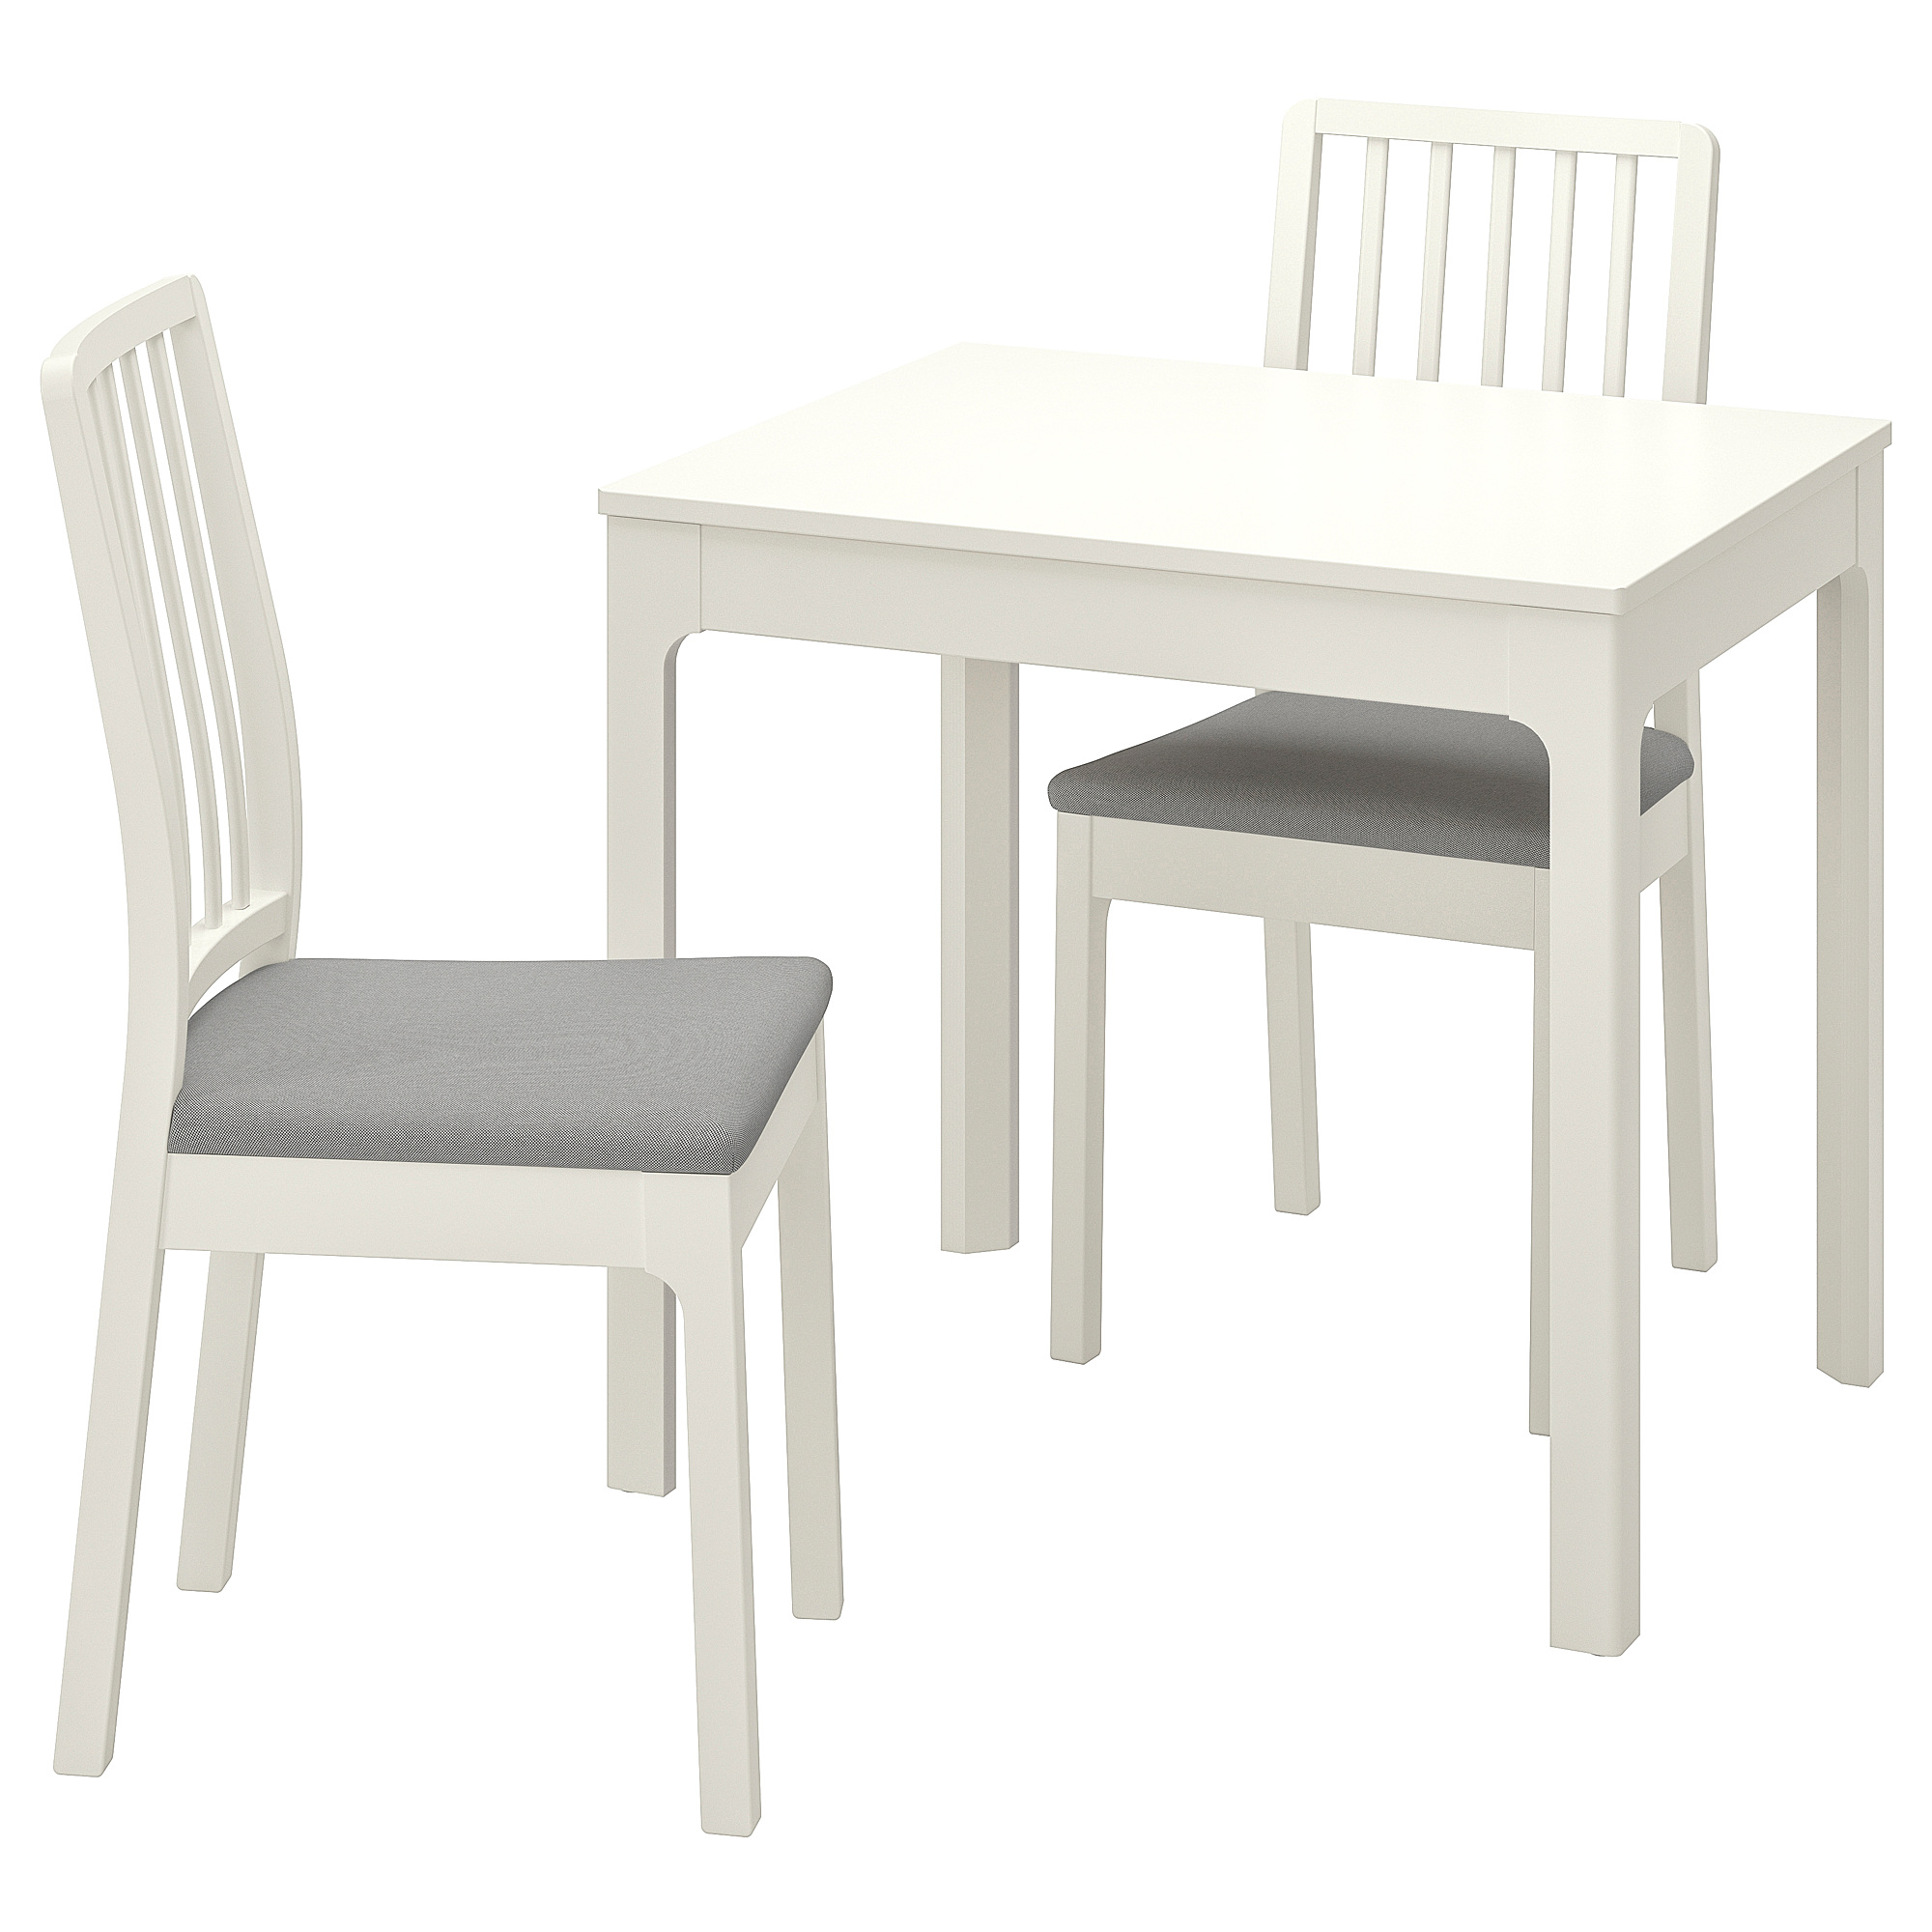 Dining Room Furniture Sets Ikea: Shop For Furniture, Lighting, Home